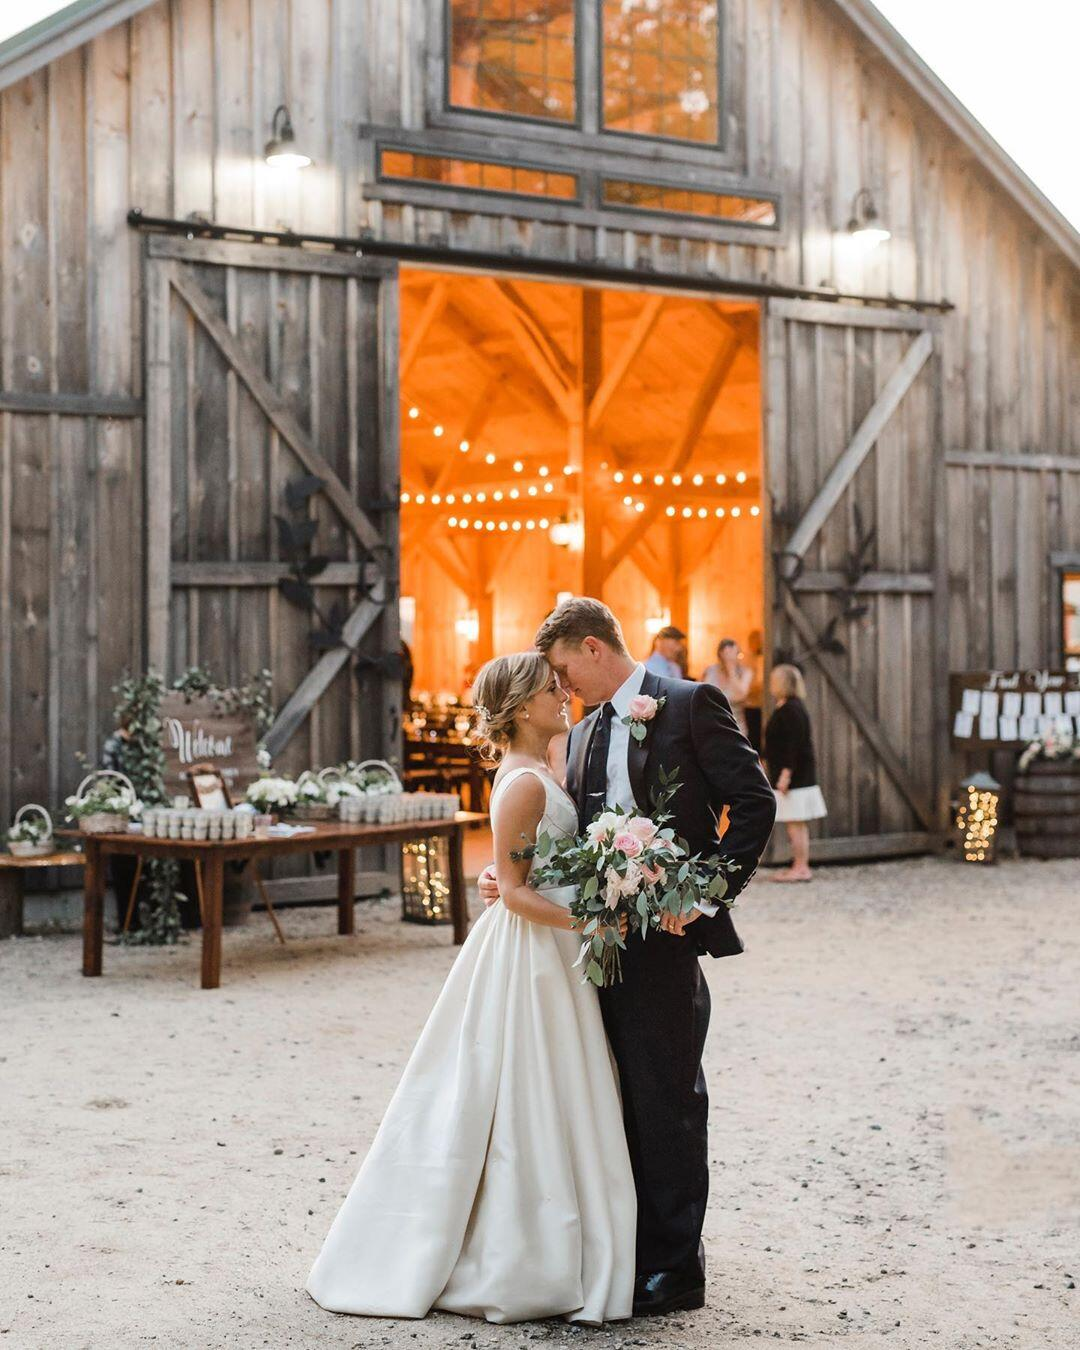 couple forehead to forehead at their wedding reception outside a barn